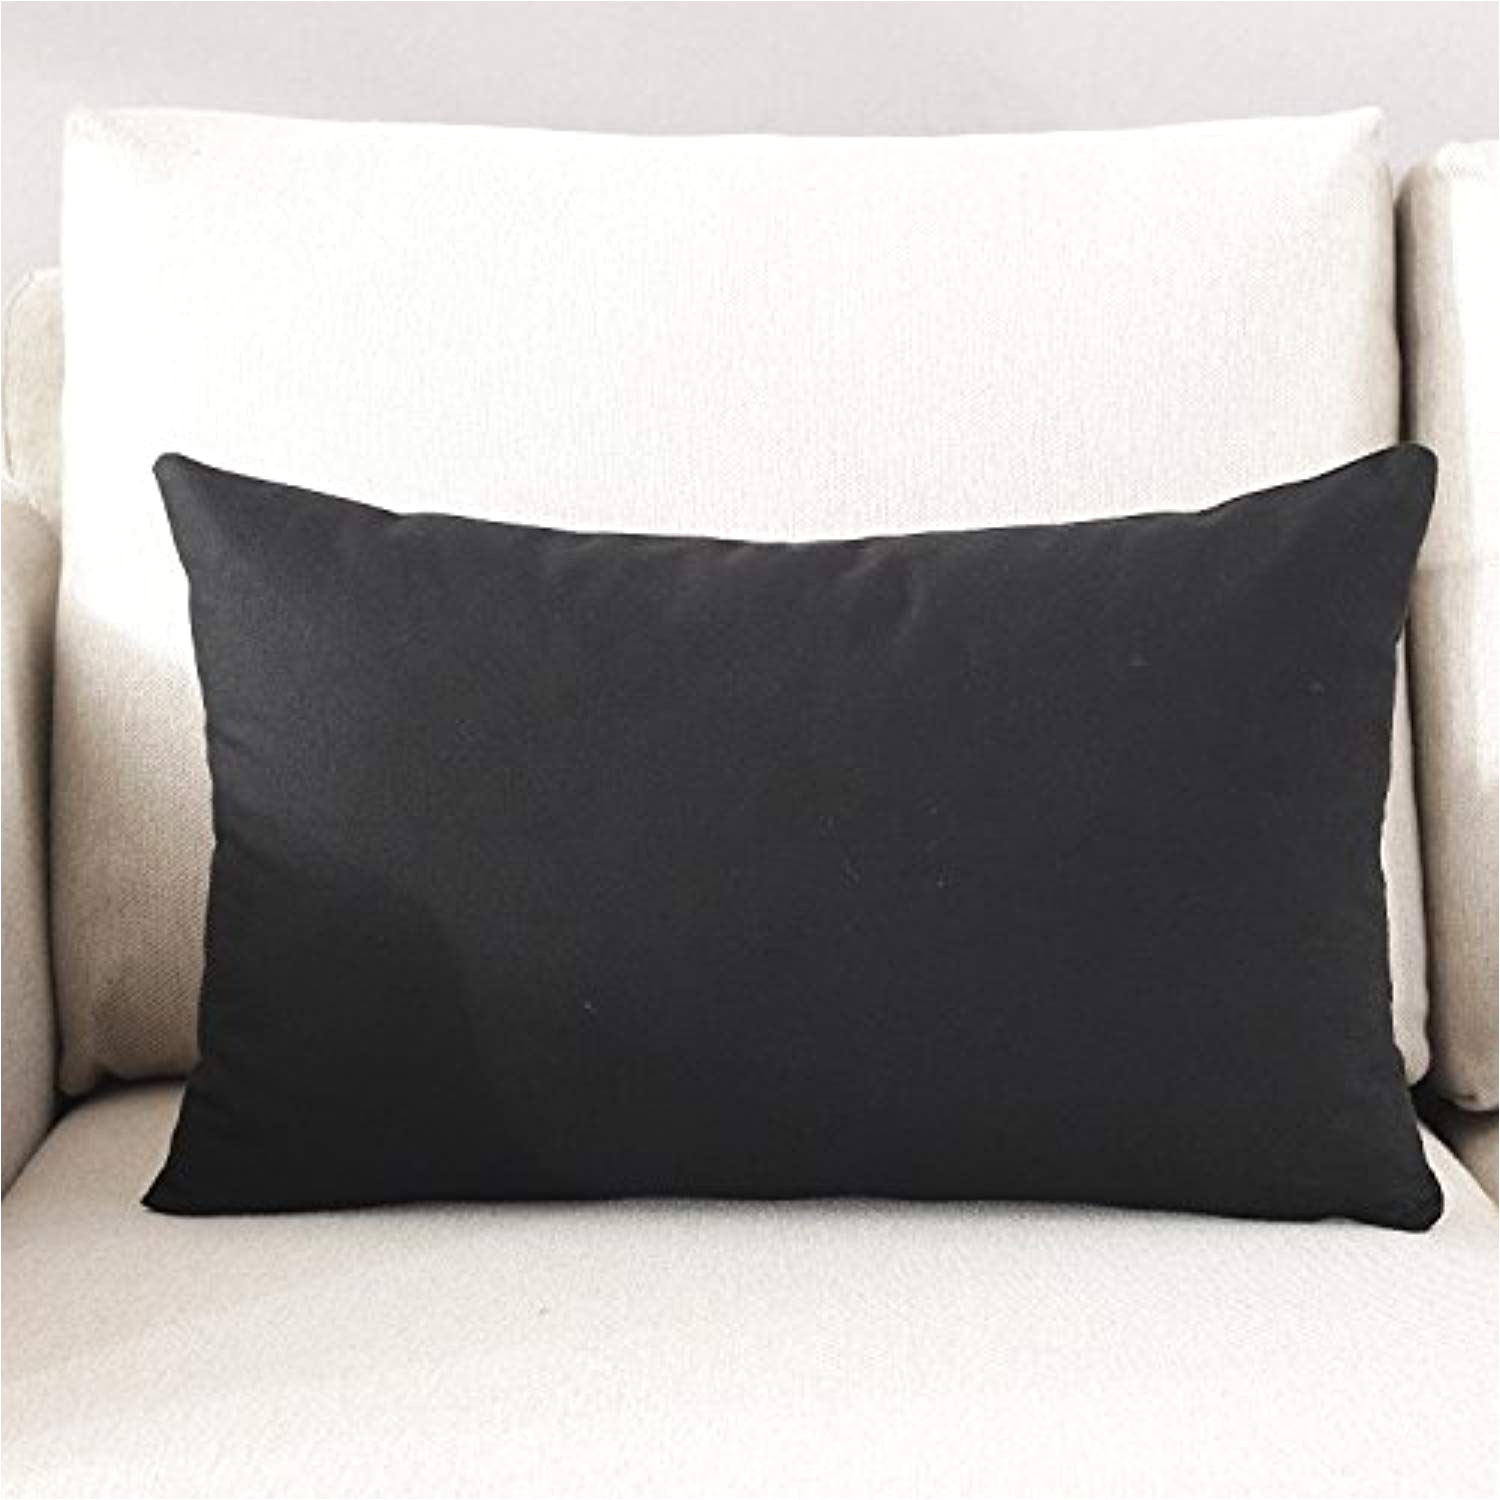 taoson home decorative 100 cotton canvas square solid toss pillowcase cushion cover pillow case with